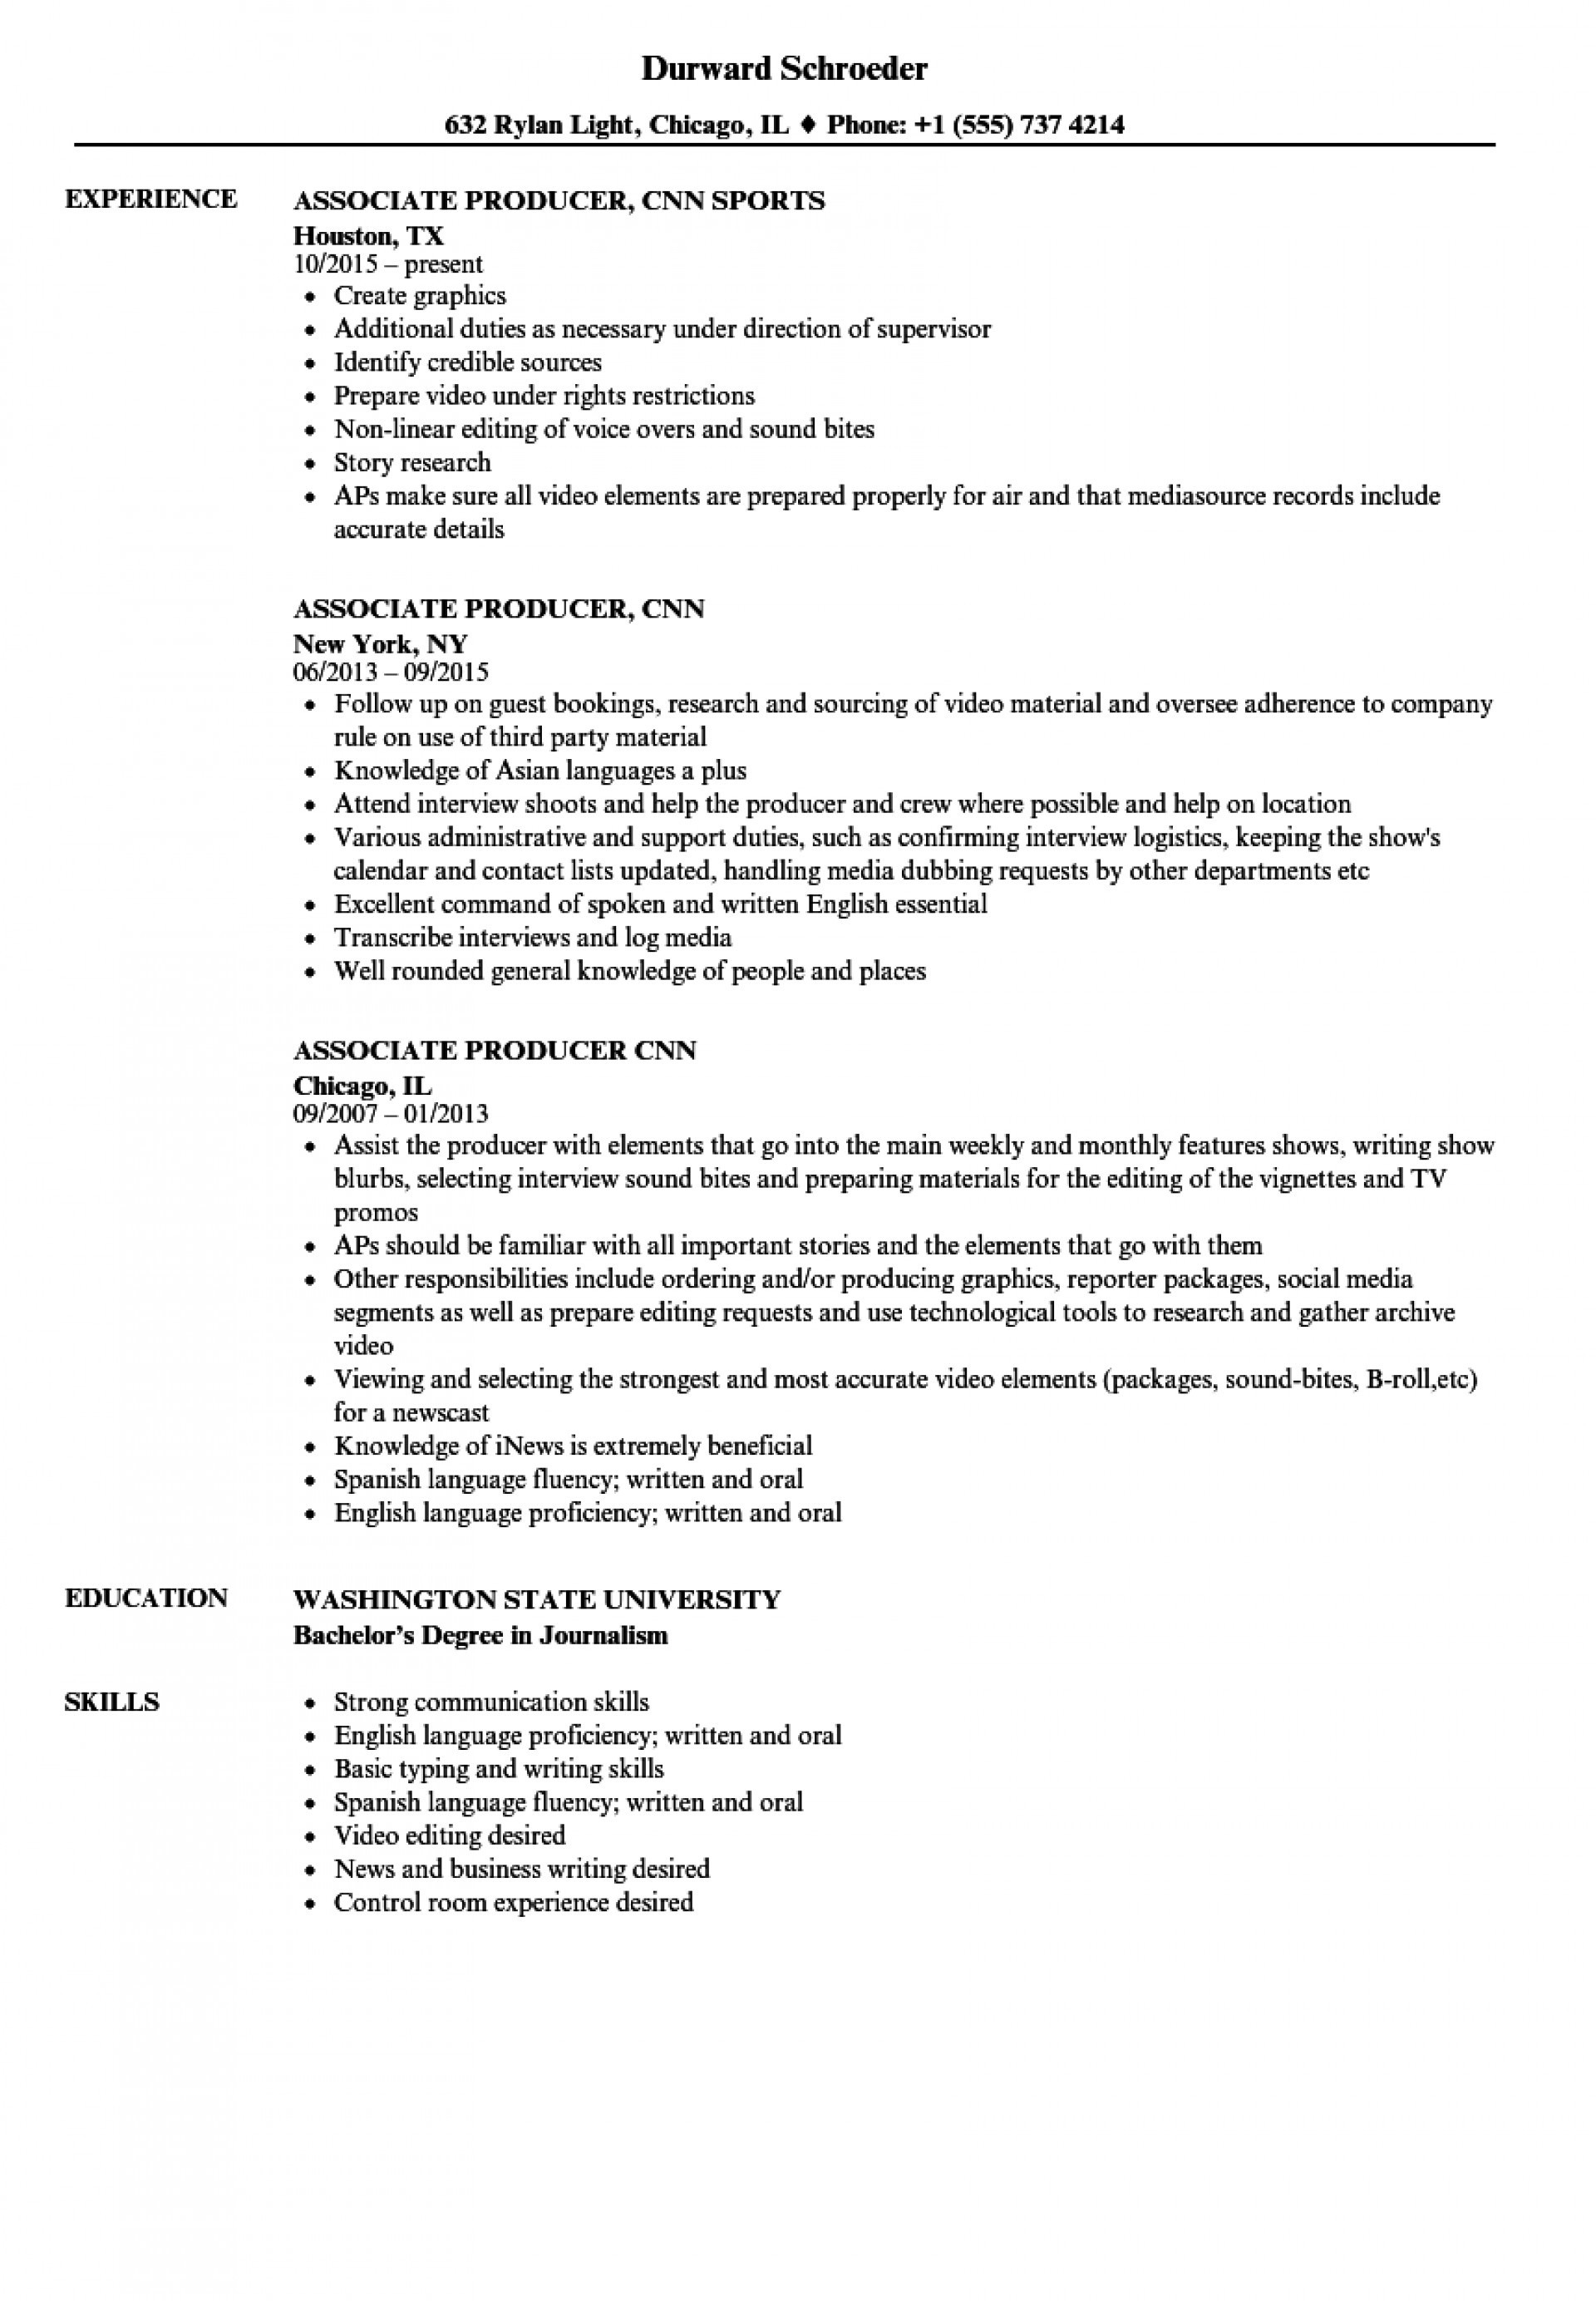 008 Research Paper Associate Producer Cnn Resume Sample Is Credible Source Staggering A For 1920